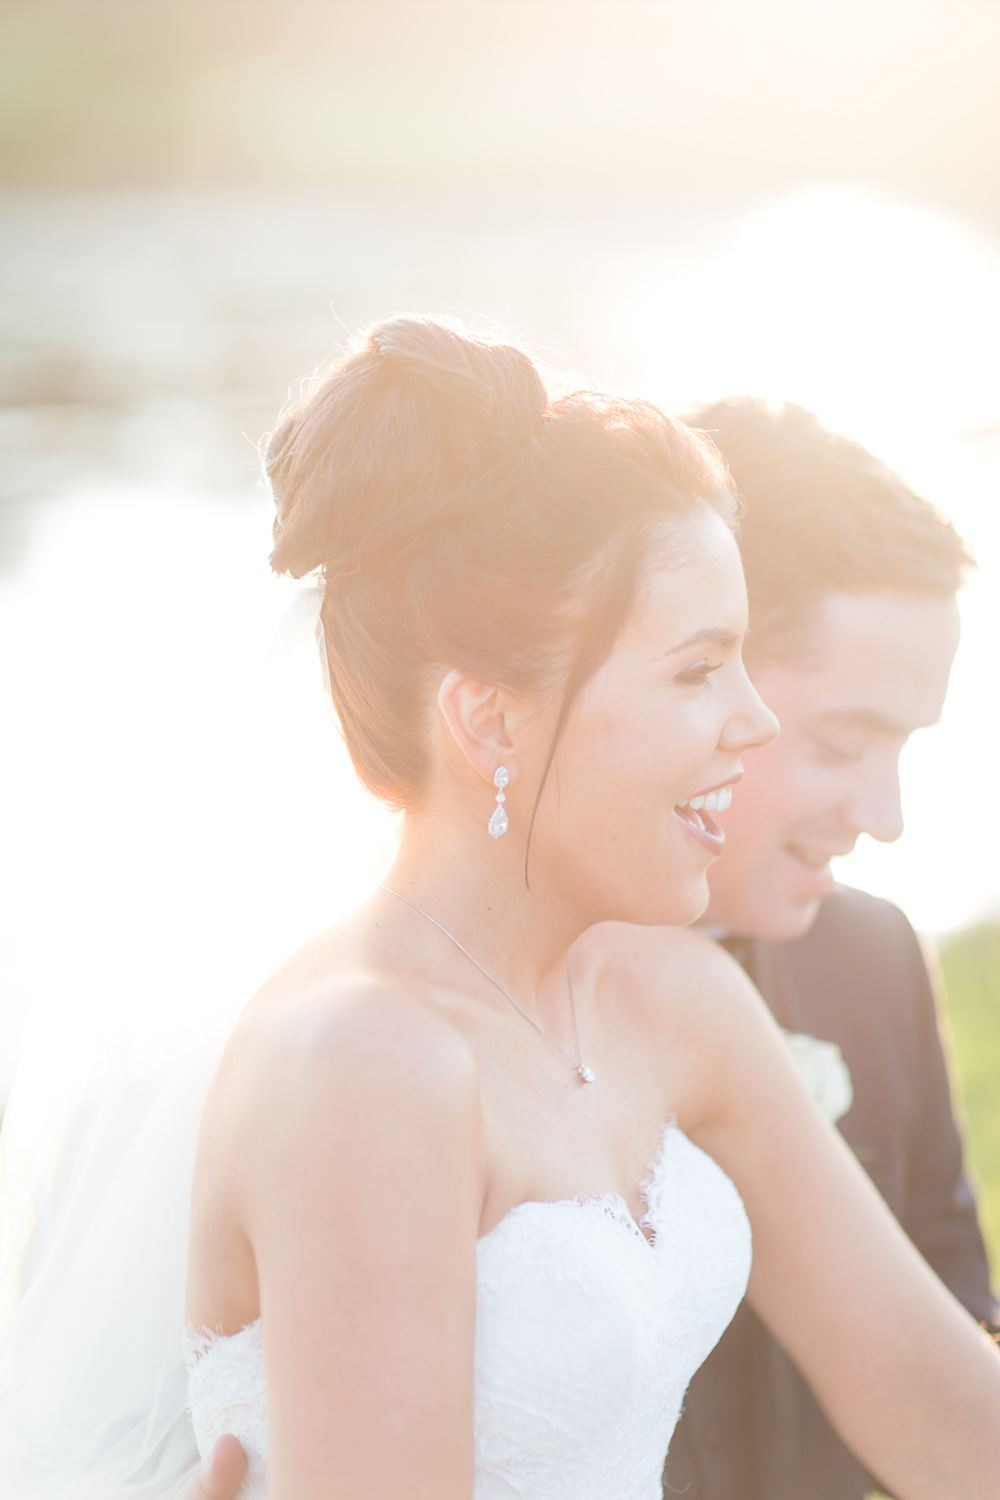 bride laughing in the warm evening light on her wedding day with an upstyle hairstyle and an open shoulder wedding dress